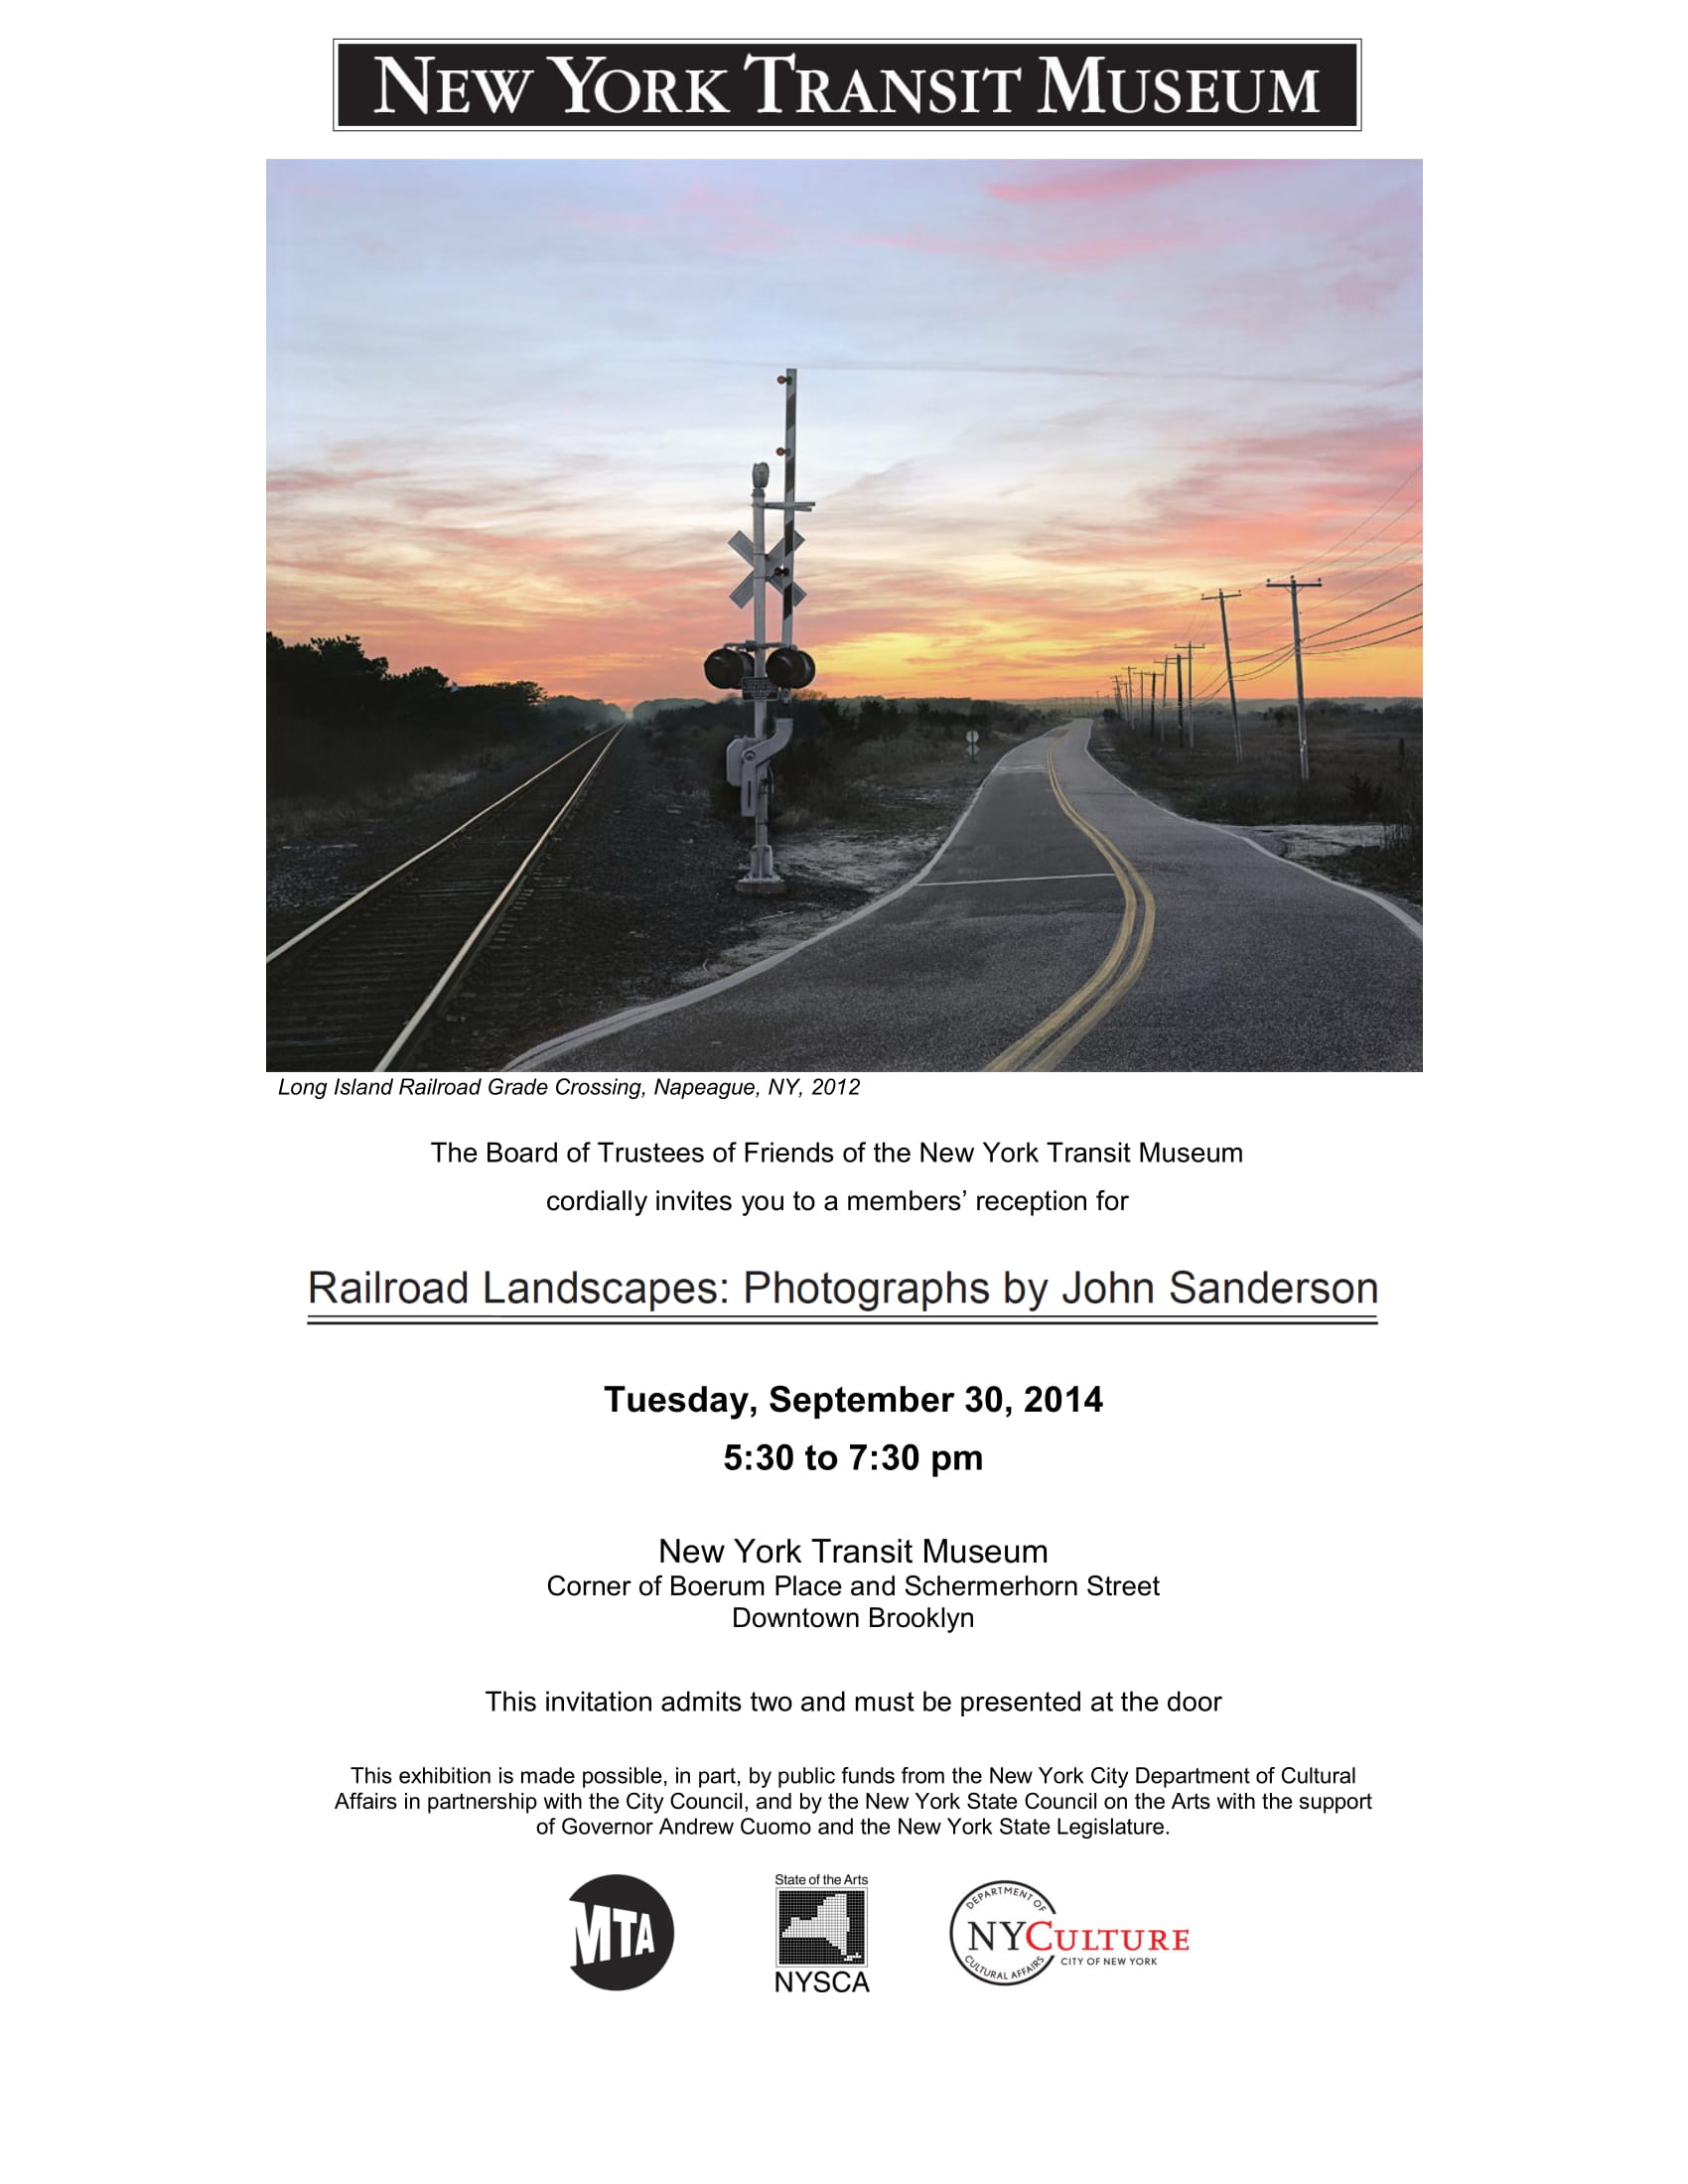 9-3-2014_Railroad Landscapes Exhibition_New York Transit Museum_Invite.jpg